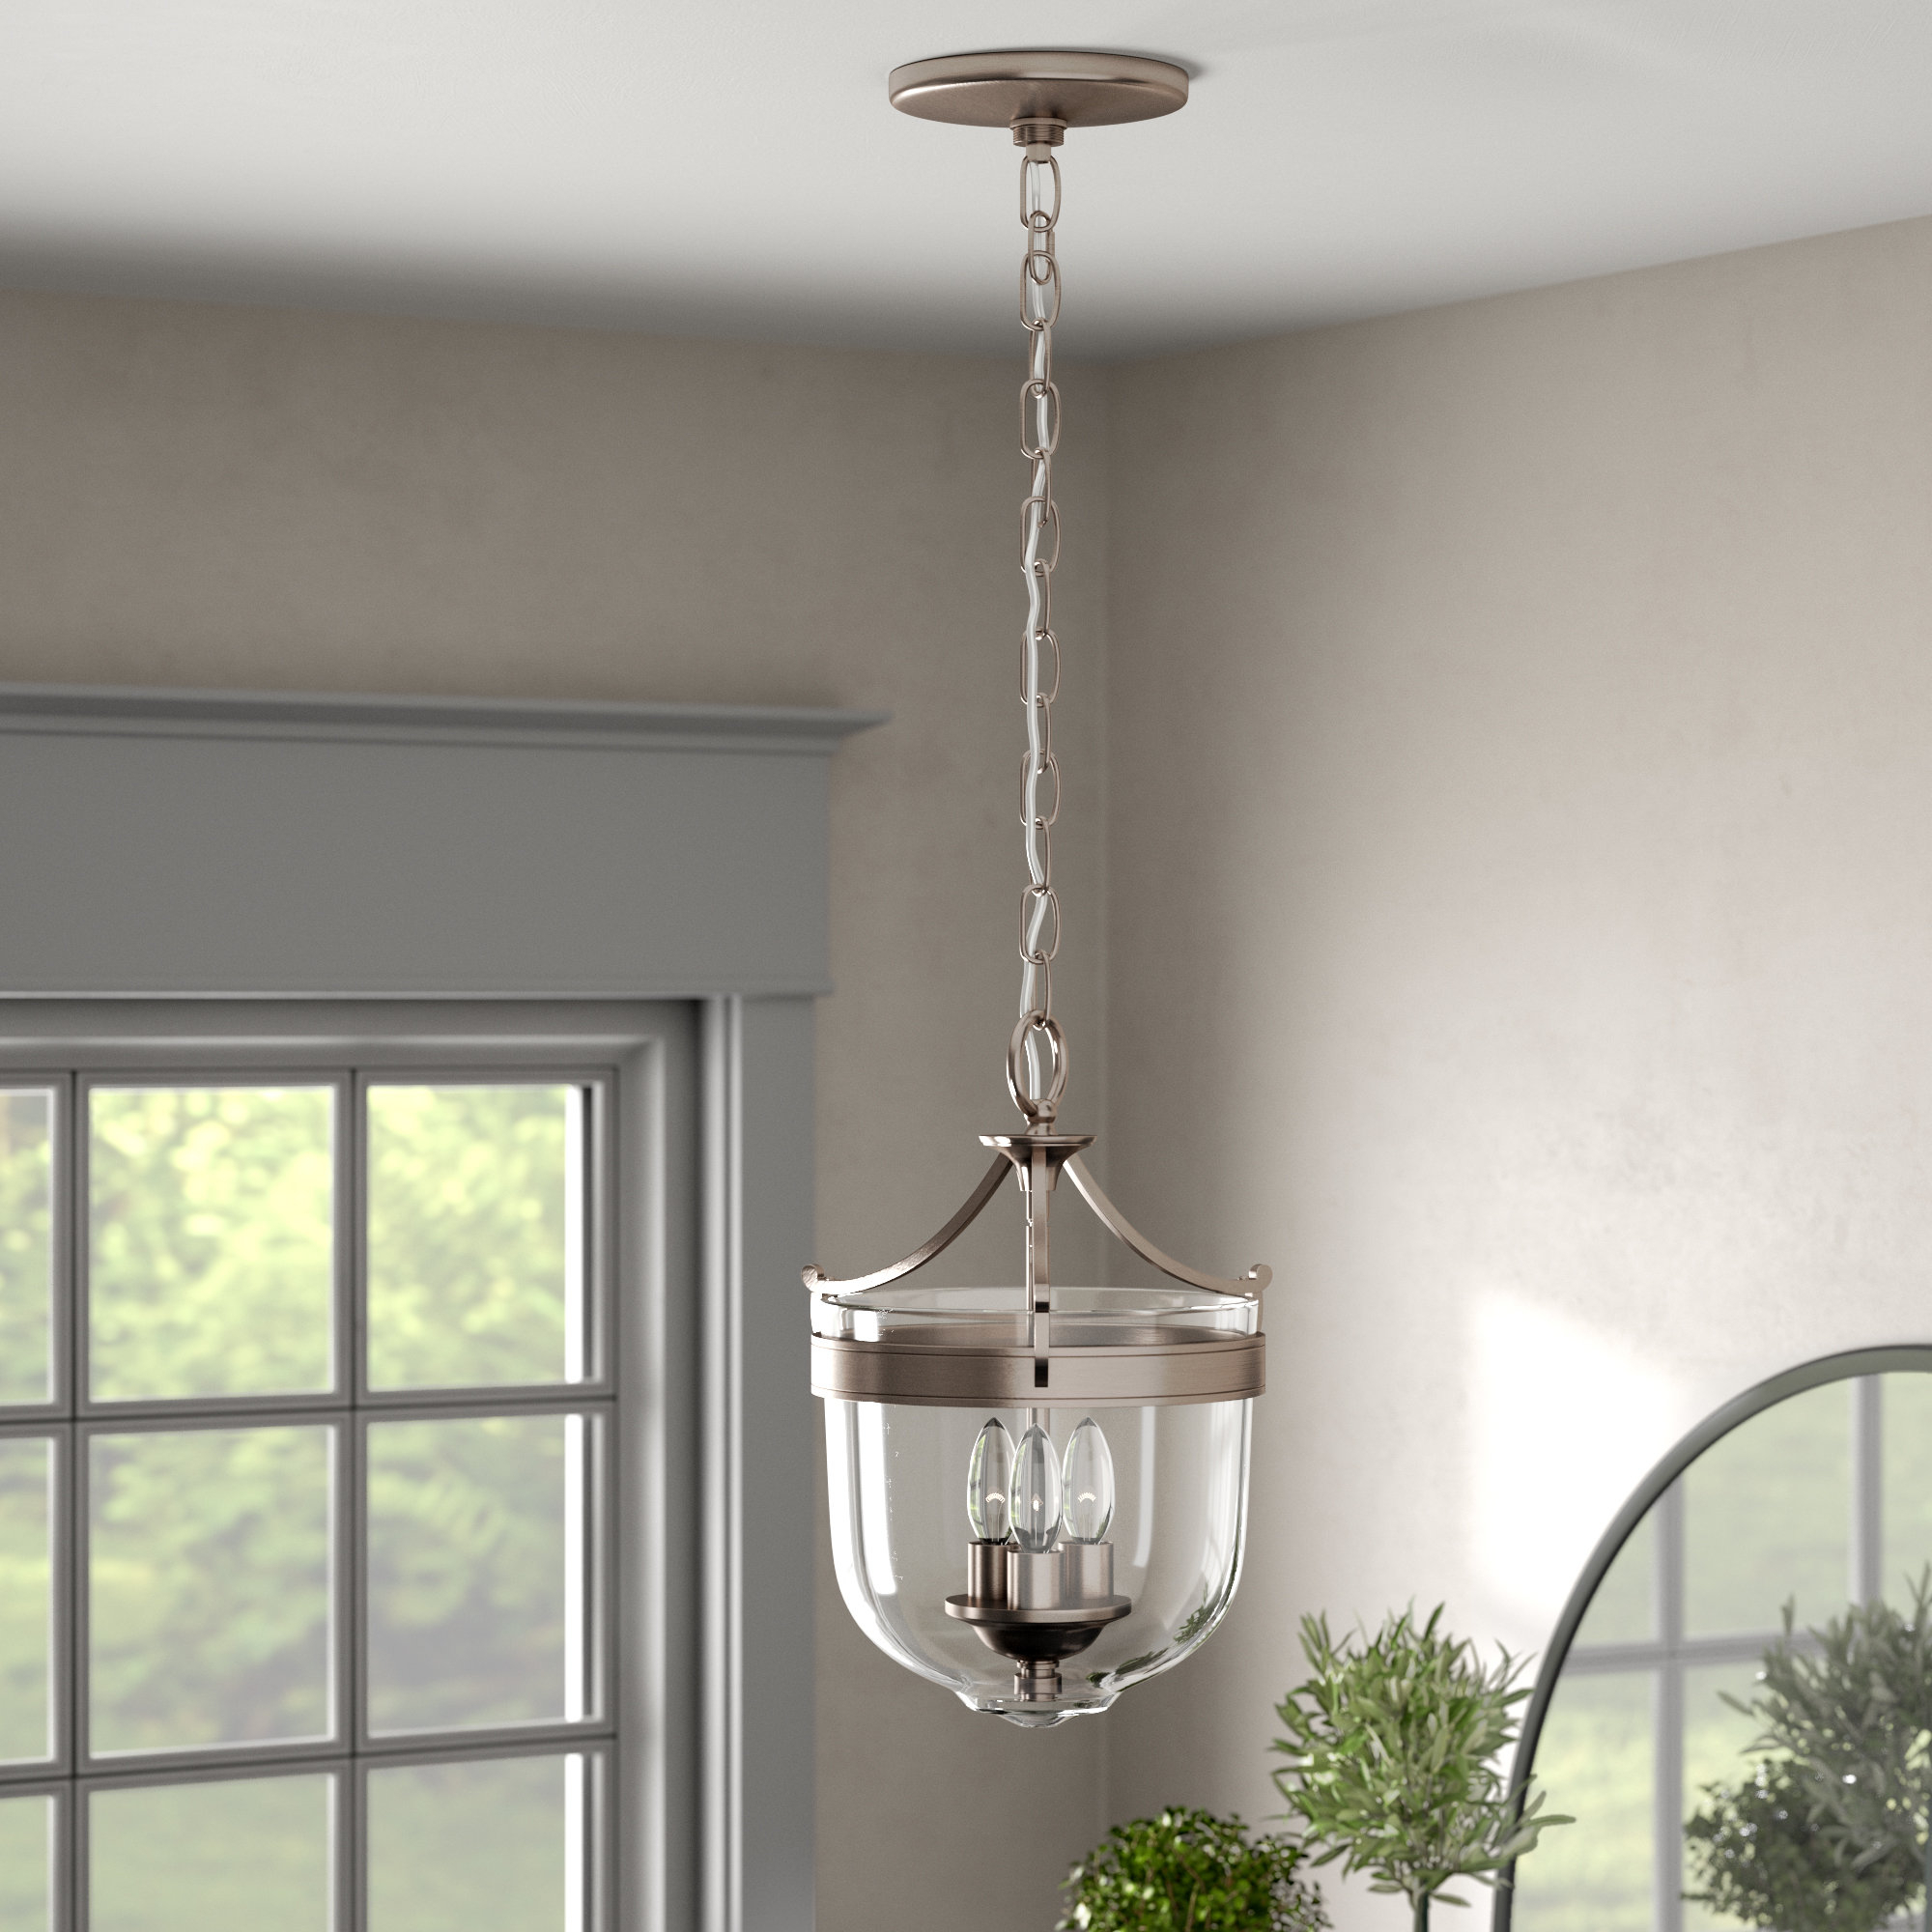 Small Urn Pendant Lighting | Wayfair for Spokane 1-Light Single Urn Pendants (Image 25 of 30)